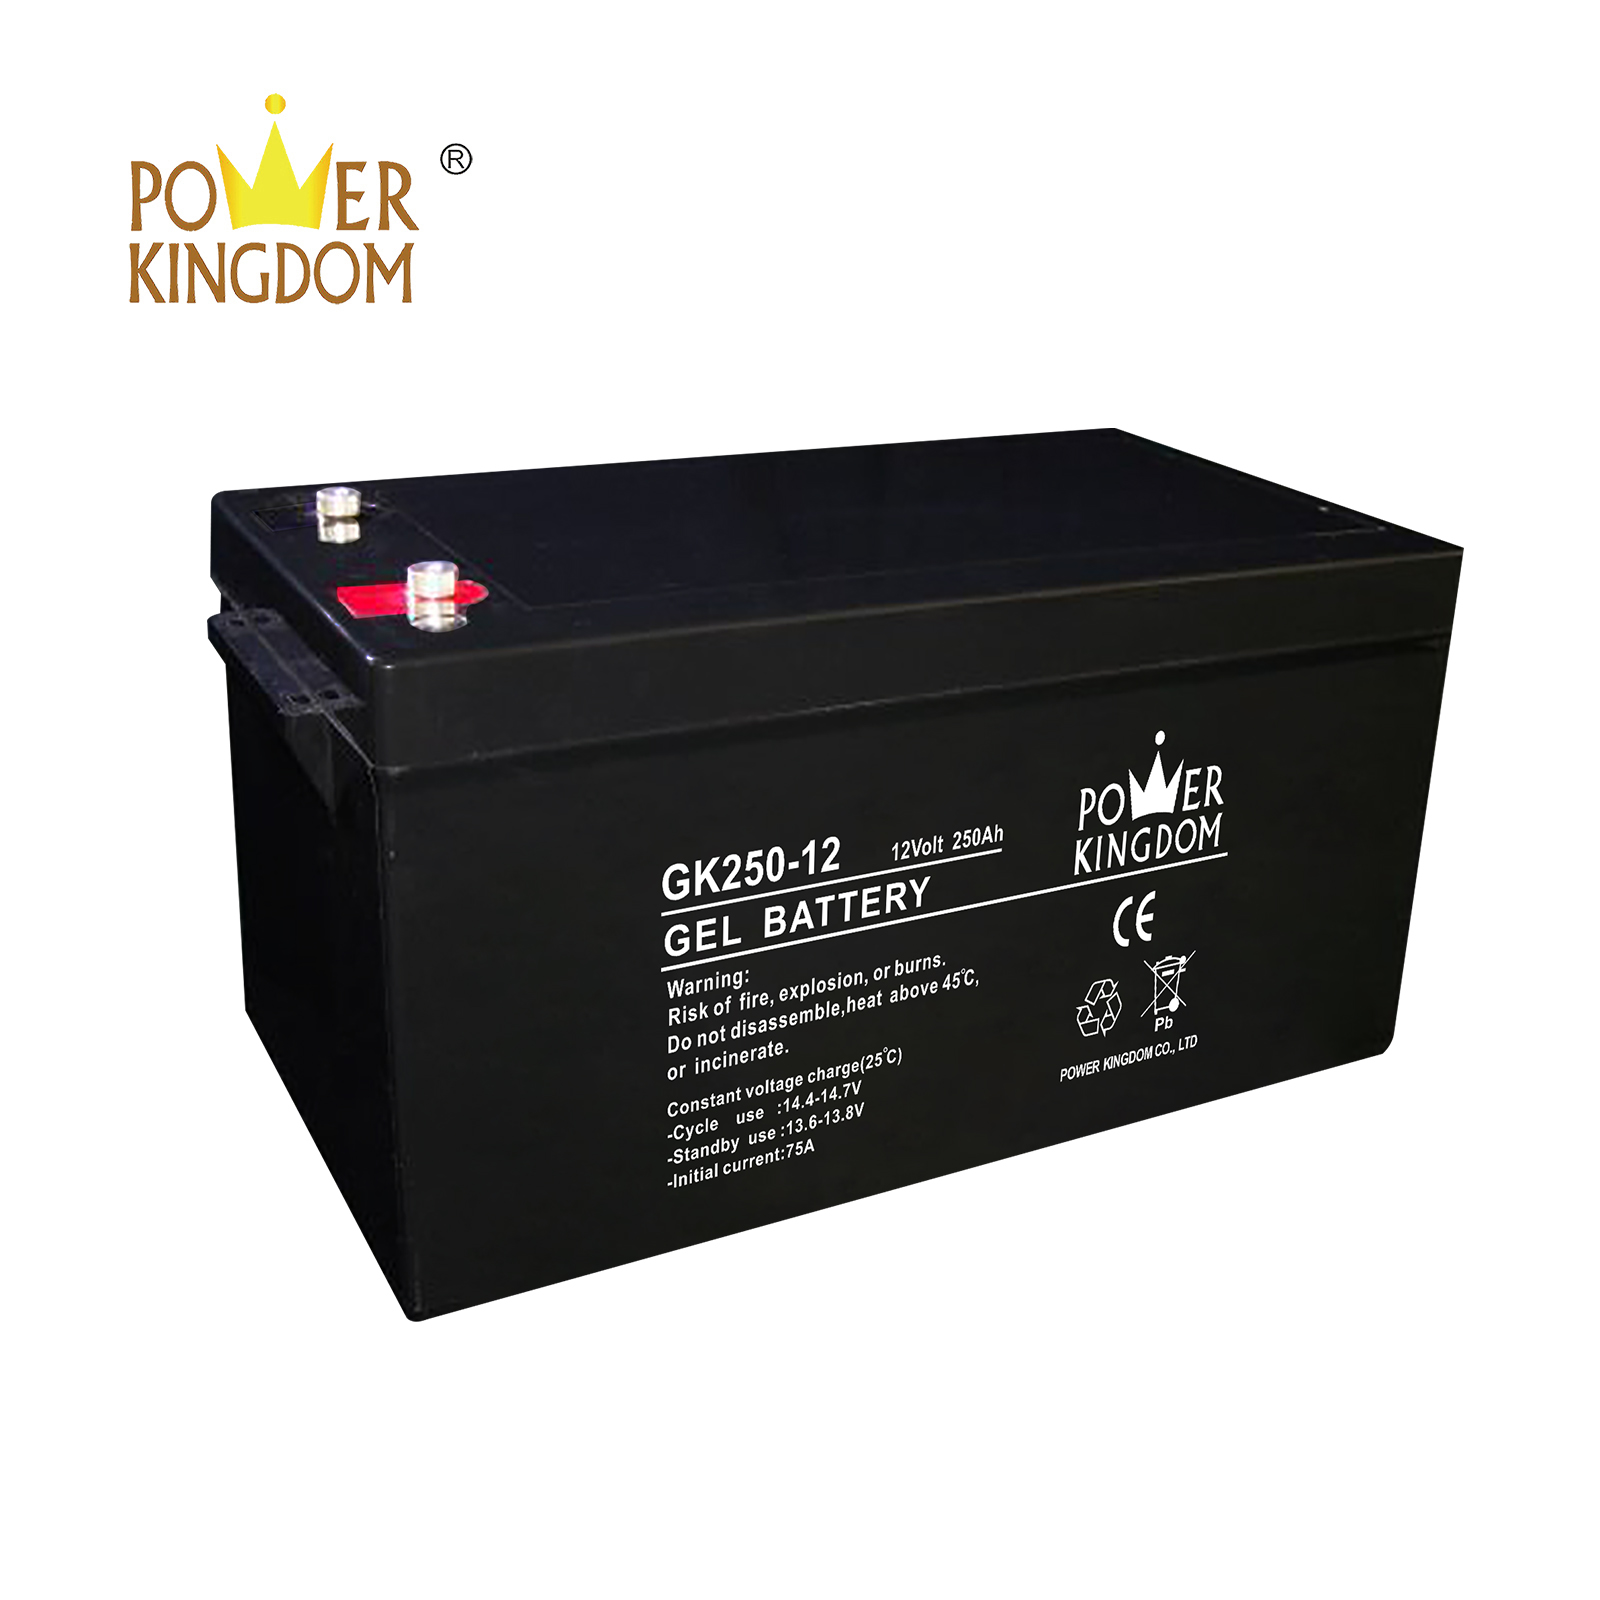 Power Kingdom higher specific energy ups battery pack inquire now medical equipment-3